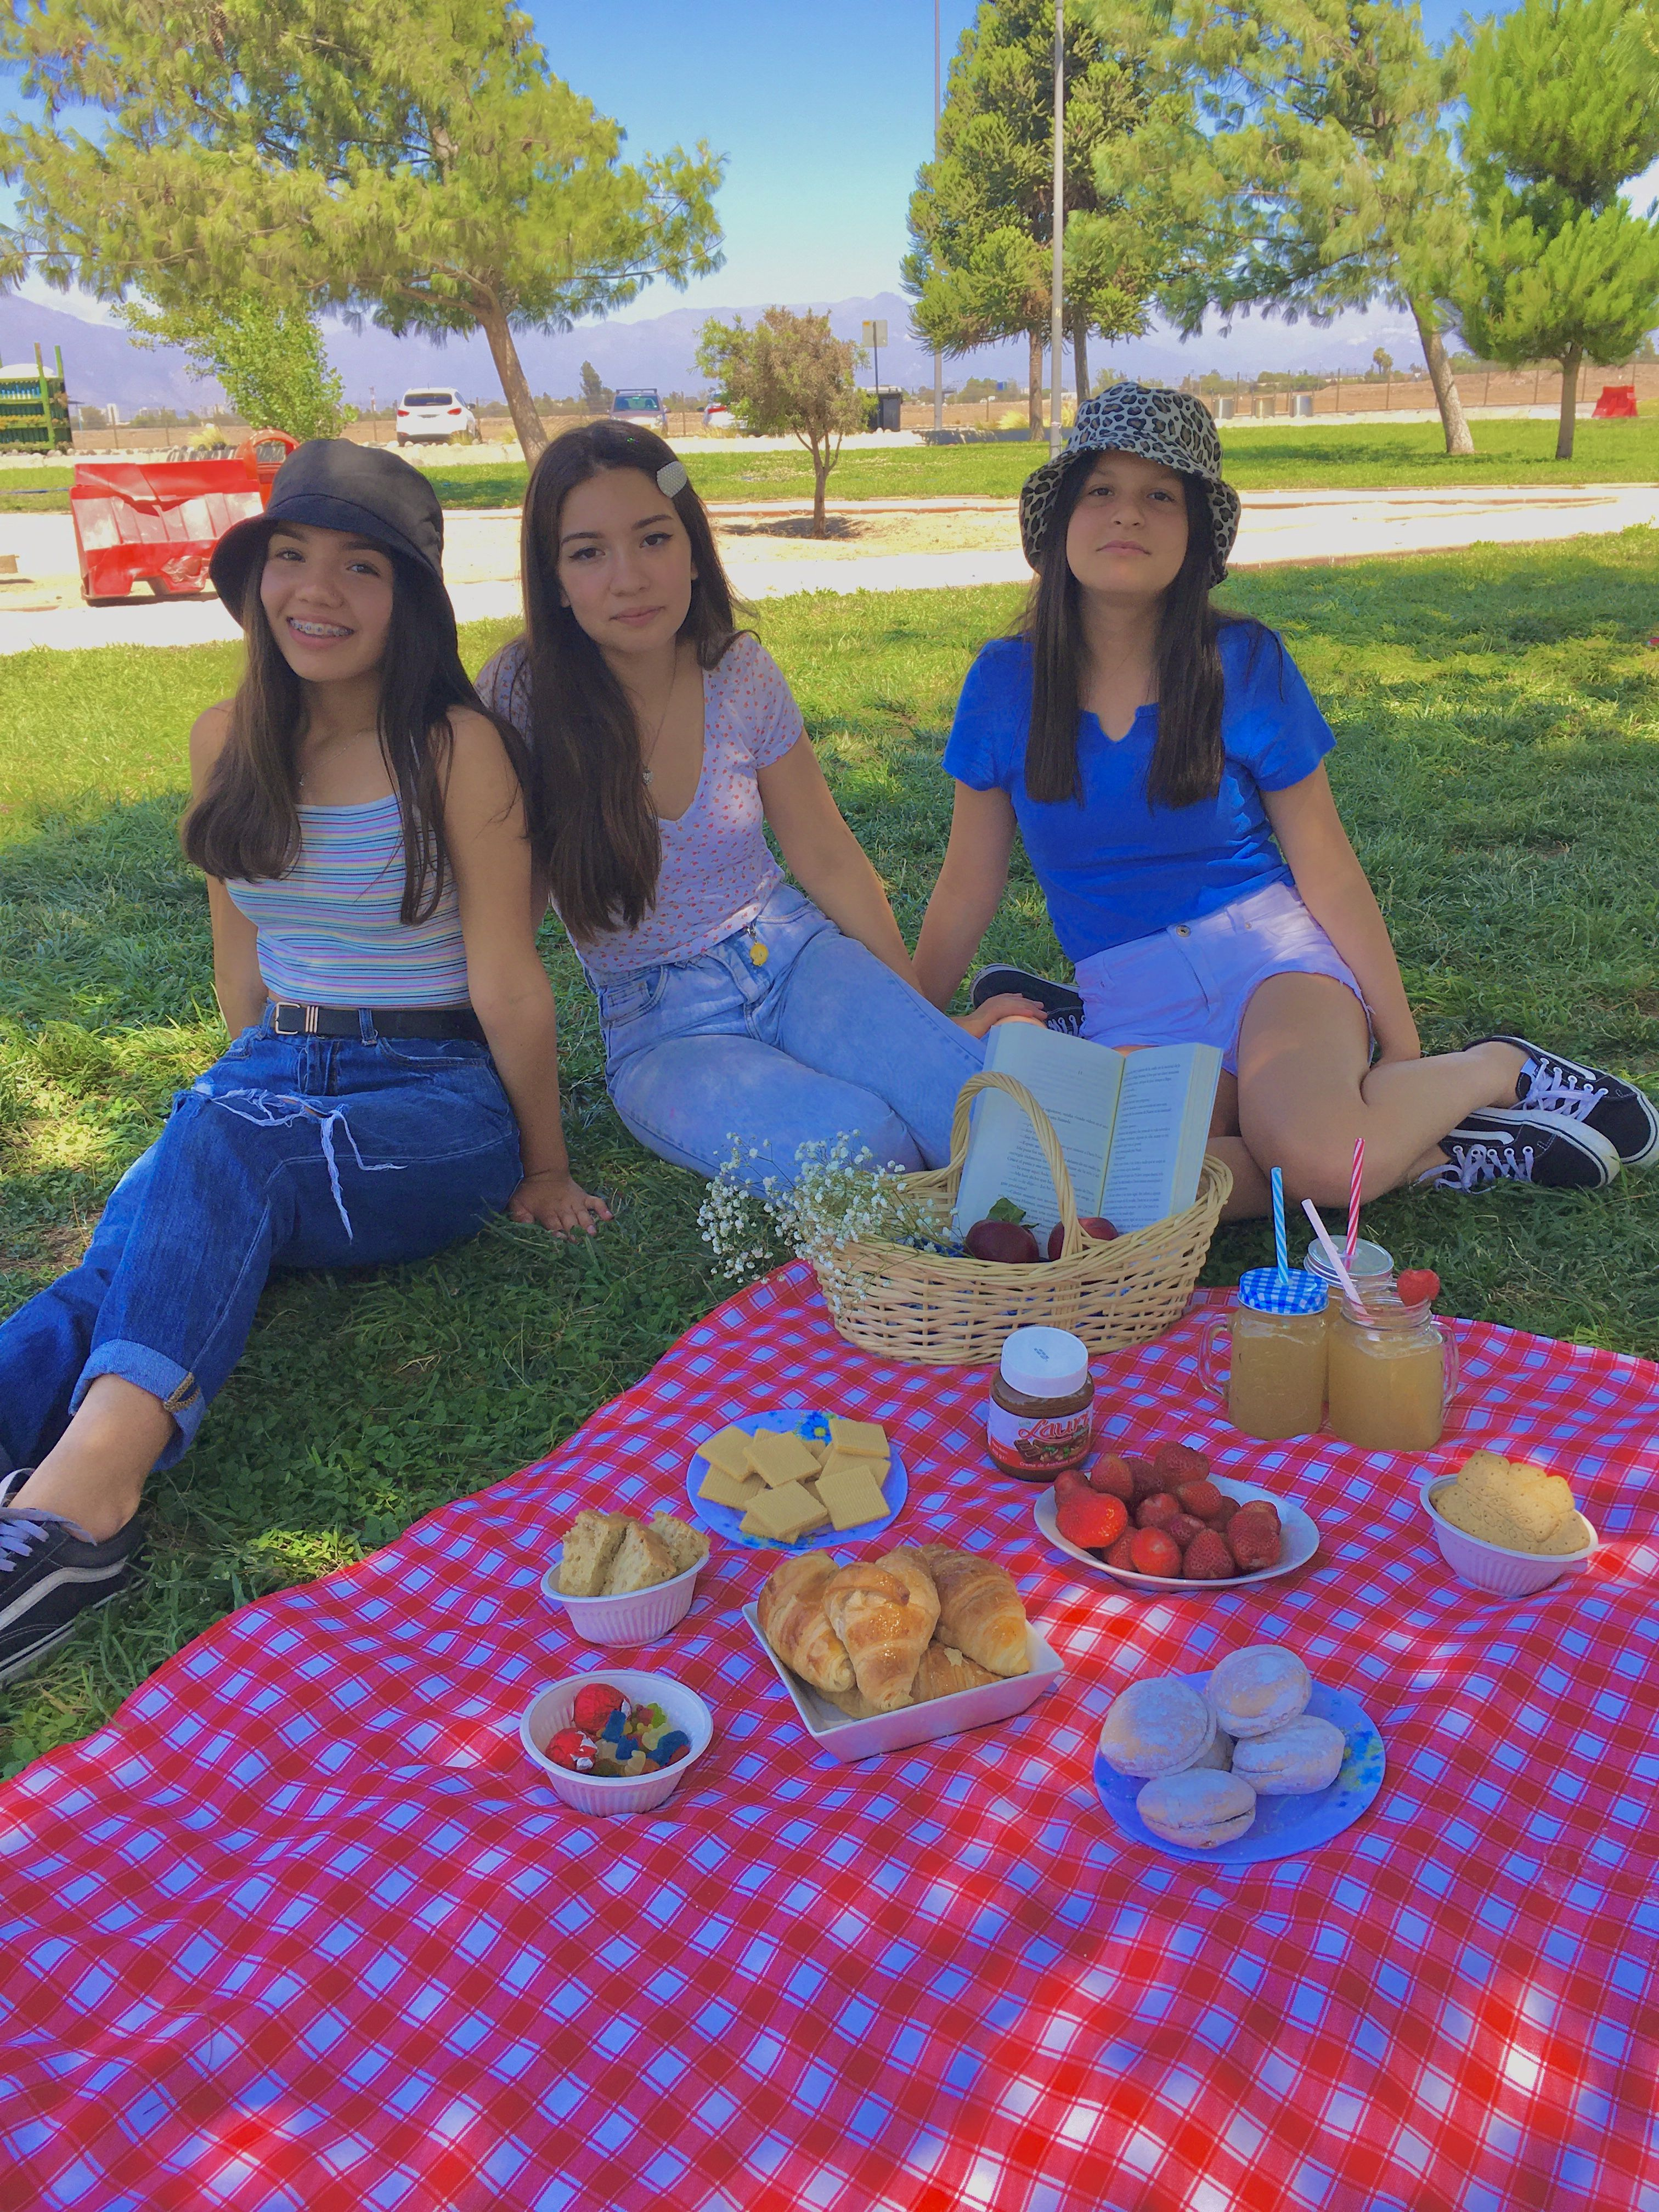 Aesthethic Picnic Aesthethic Friends Indie Y2k Picnic Chulo Nsksbd Picnic Outfits Indie Girl Indie Kids